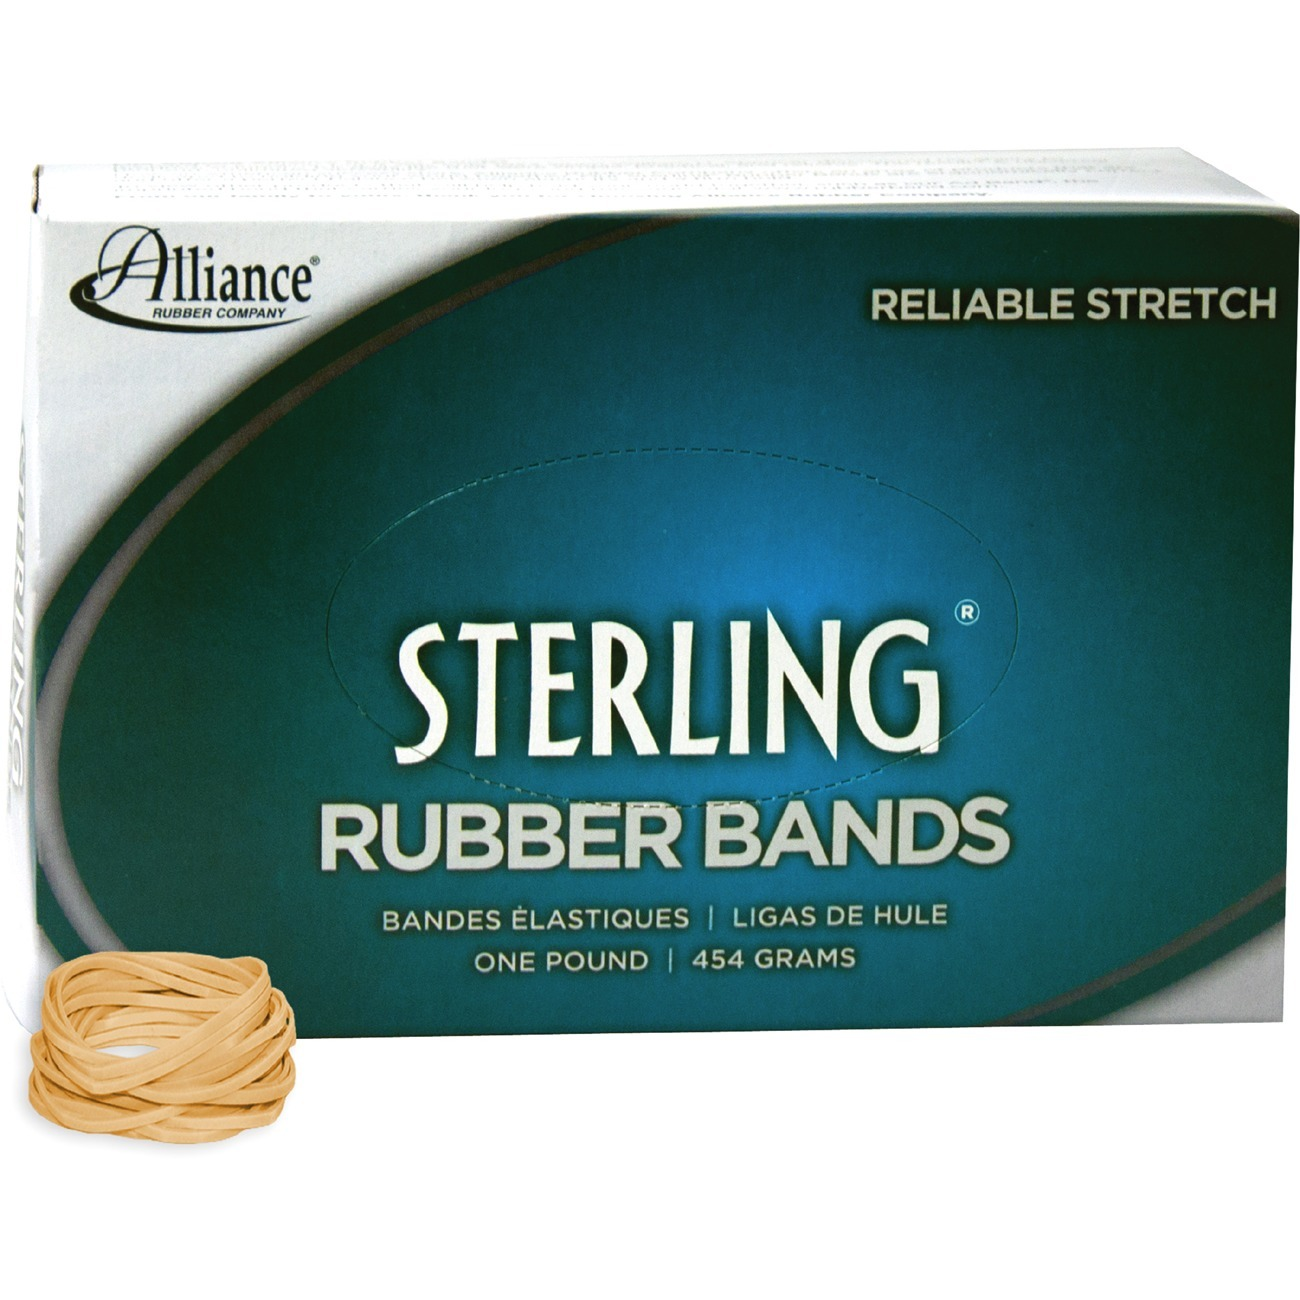 1lb Pack Size 16 Universal Rubber Bands